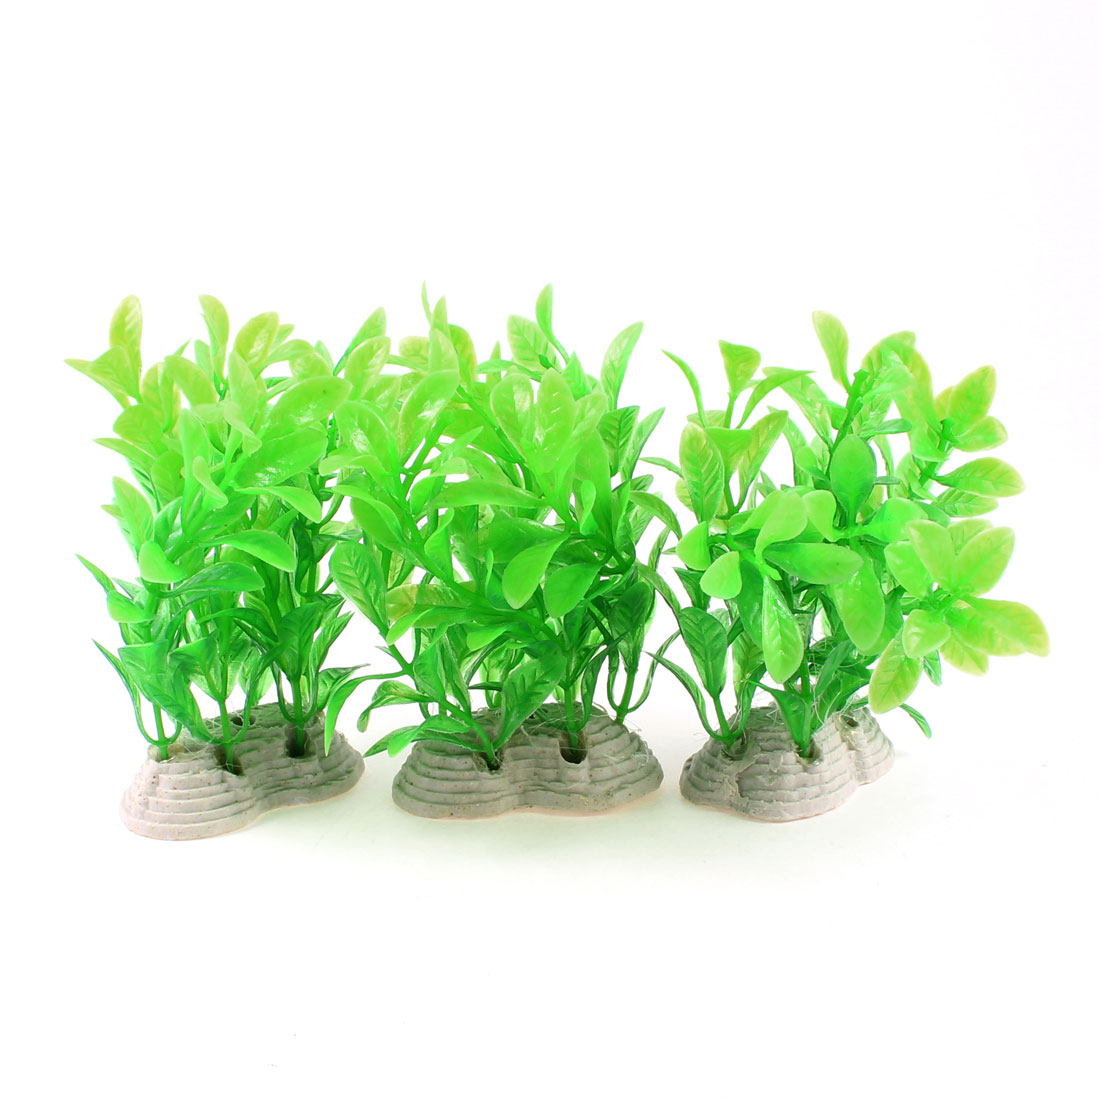 "3 Pcs Fish Tank Decor 4.3"" Height Plactic Underwater Plant Grass Green"